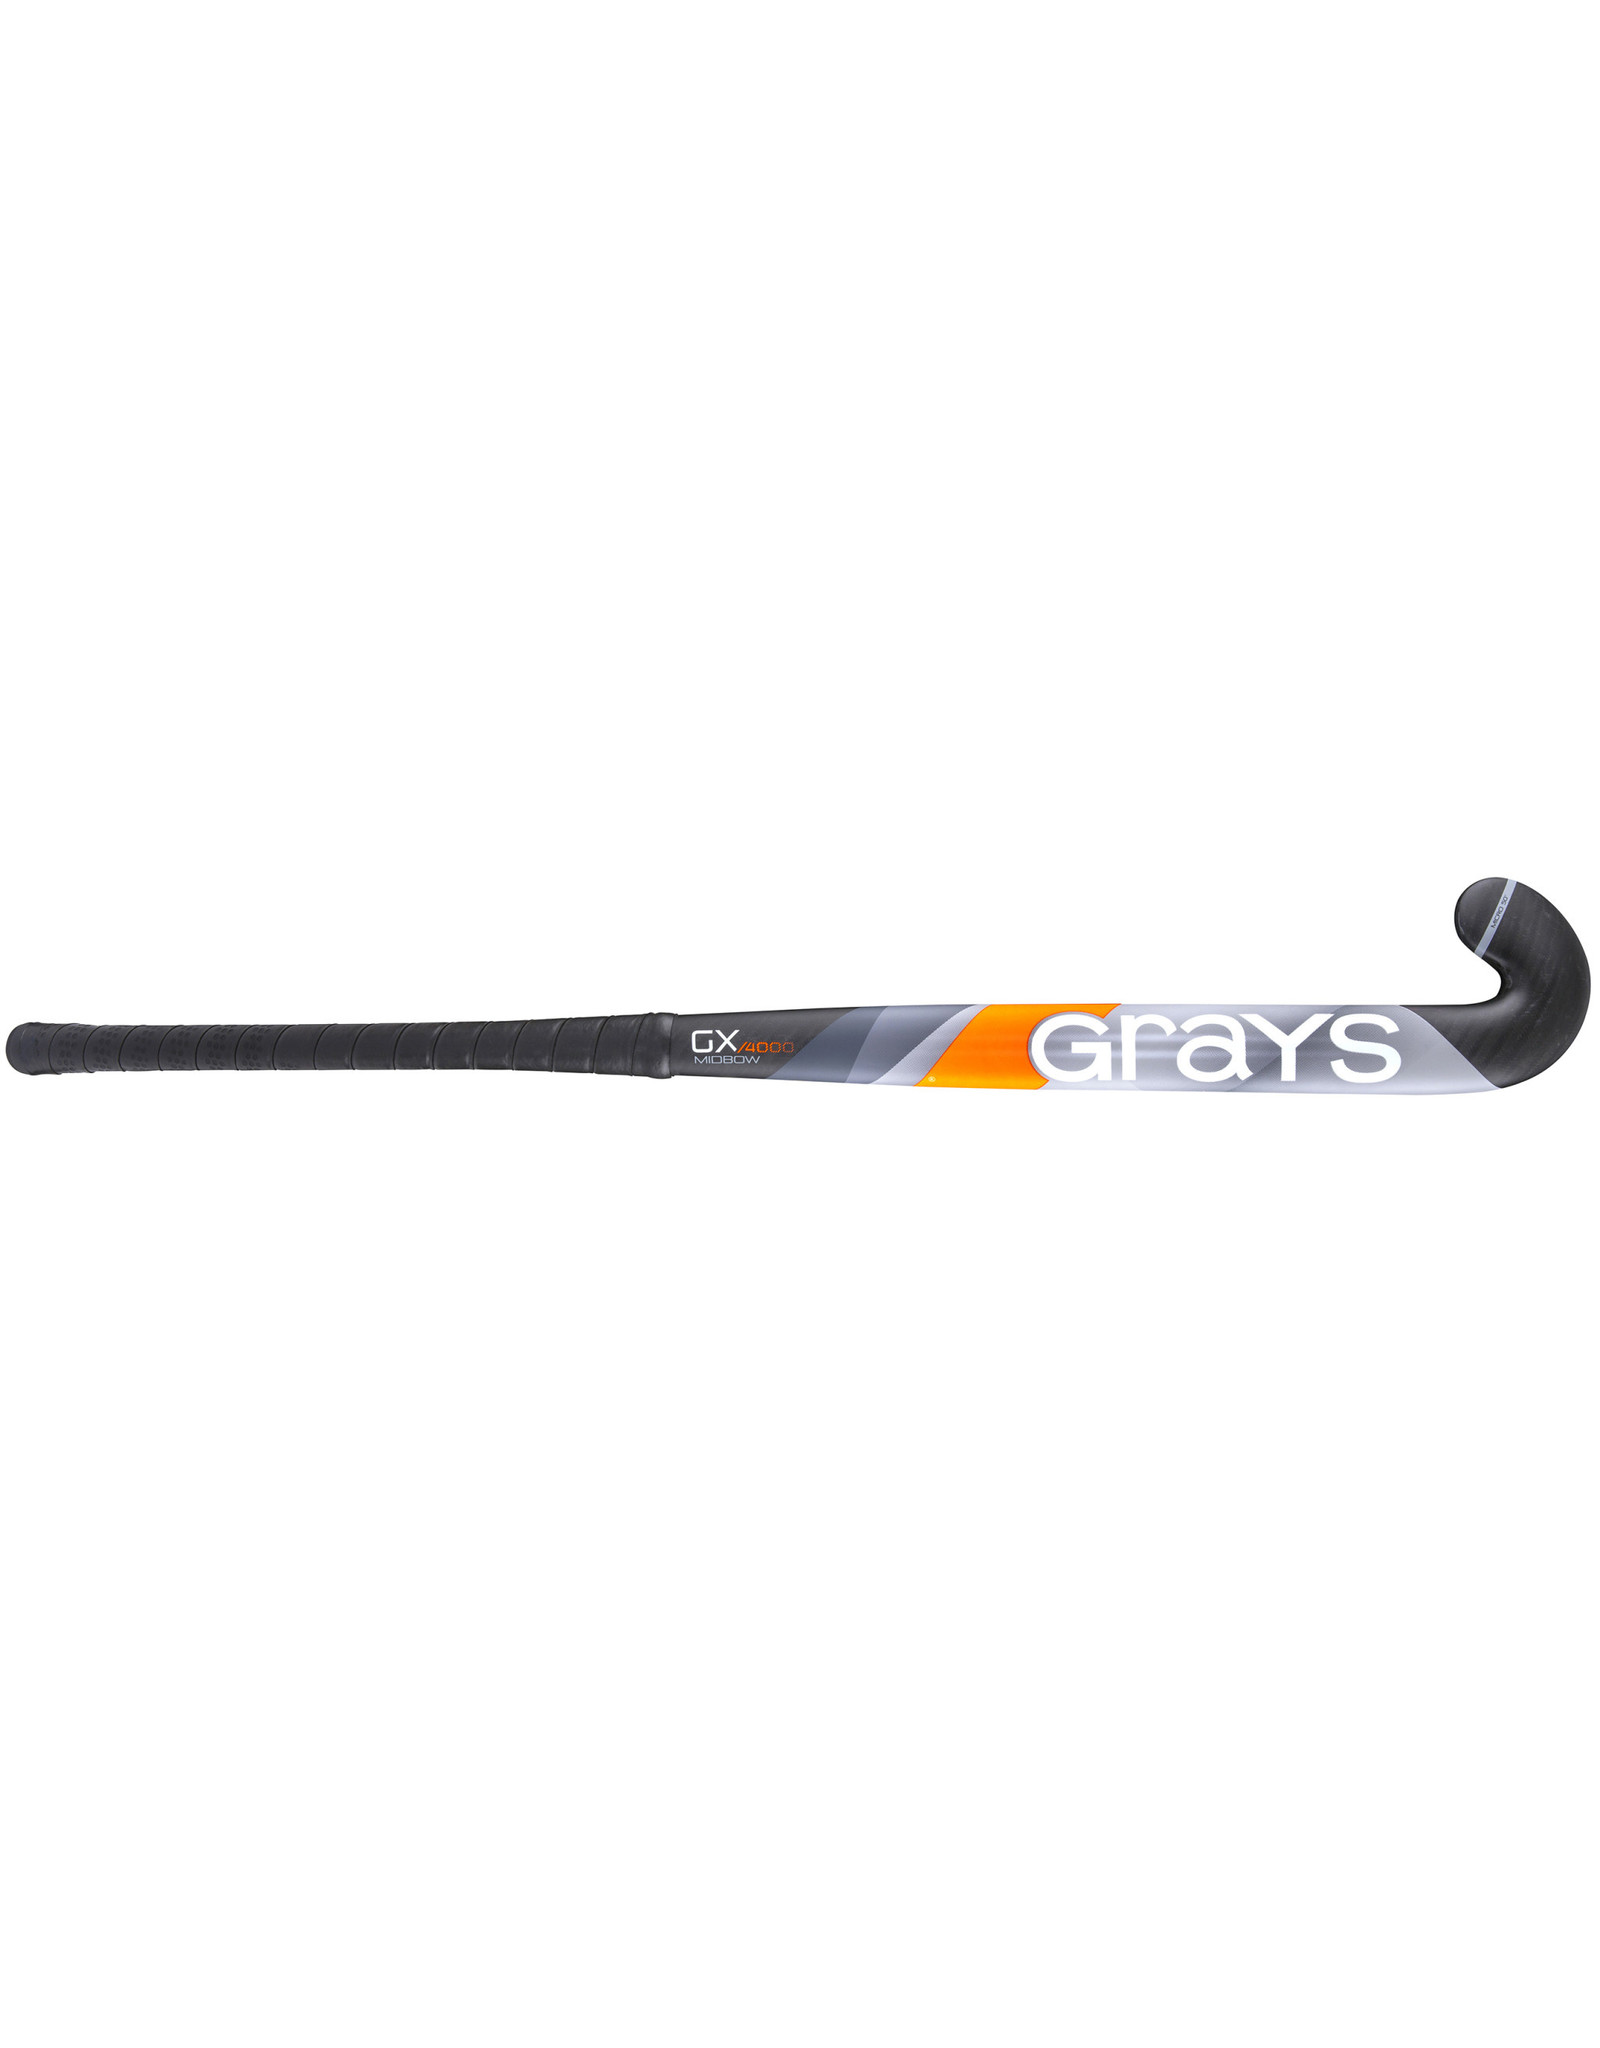 Grays STK GX4000 MB MC